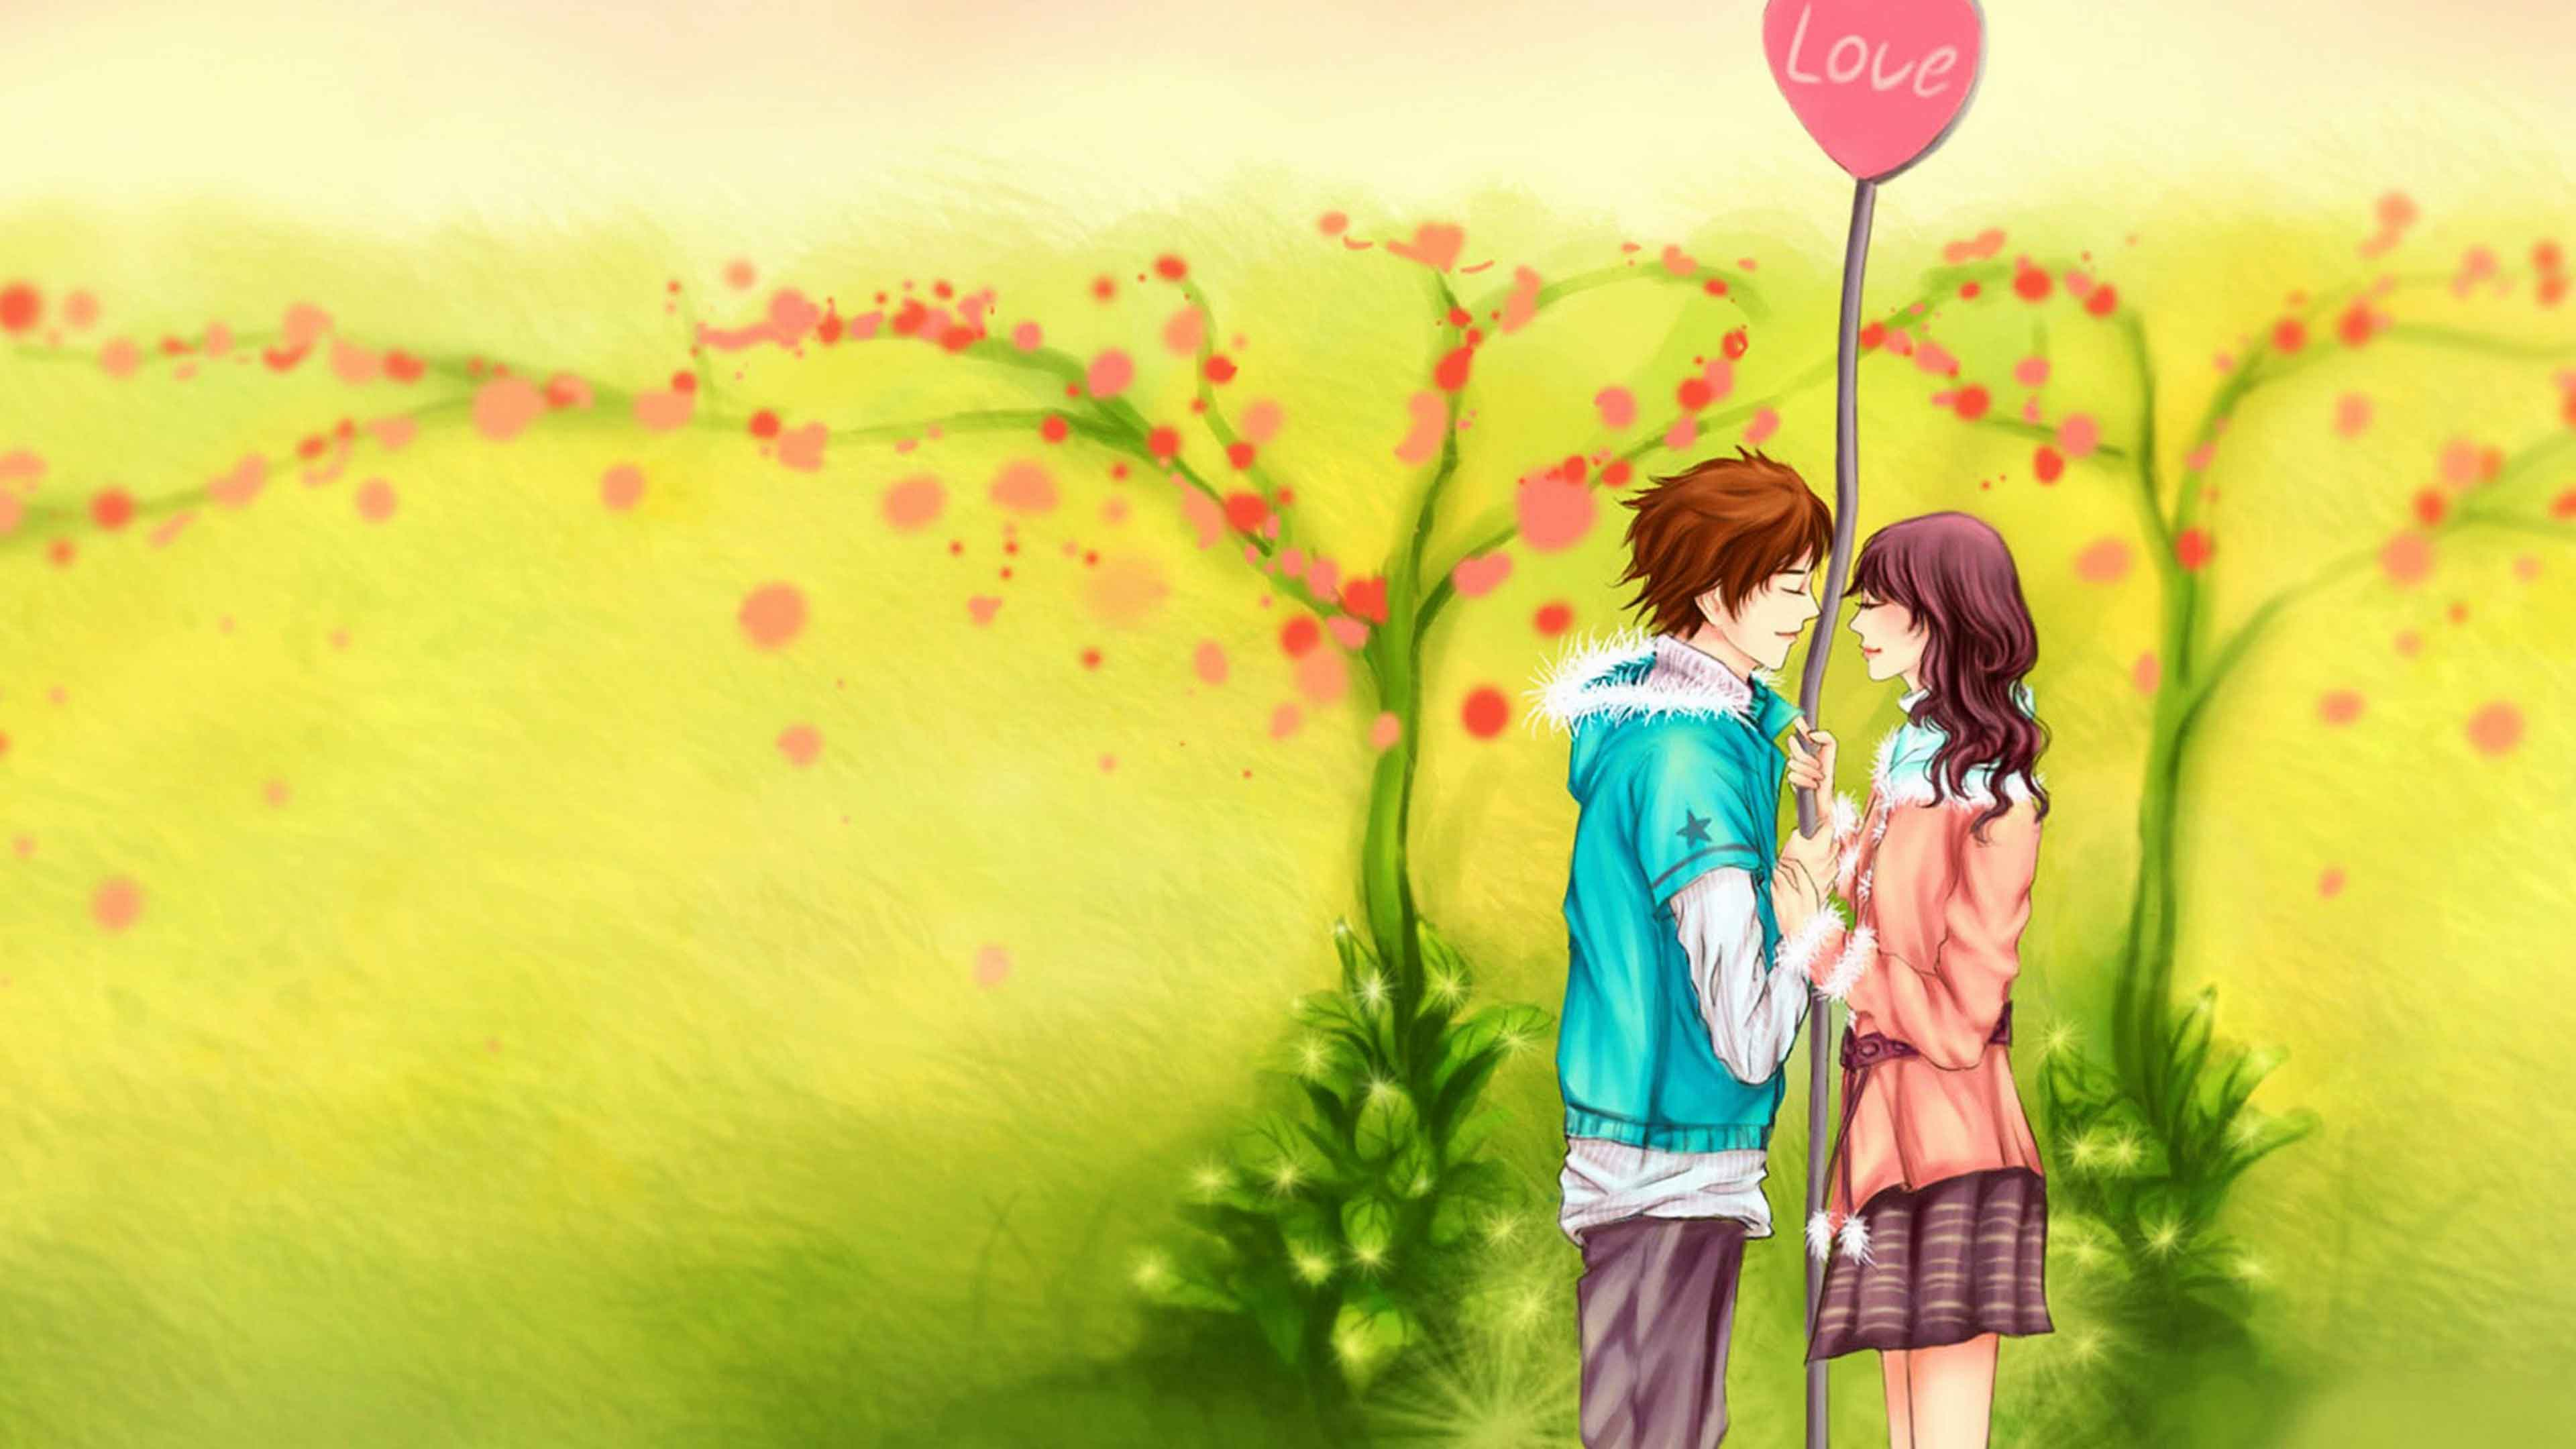 3d Love Couple Cartoon Wallpapers Download - 3d wallpaper HD